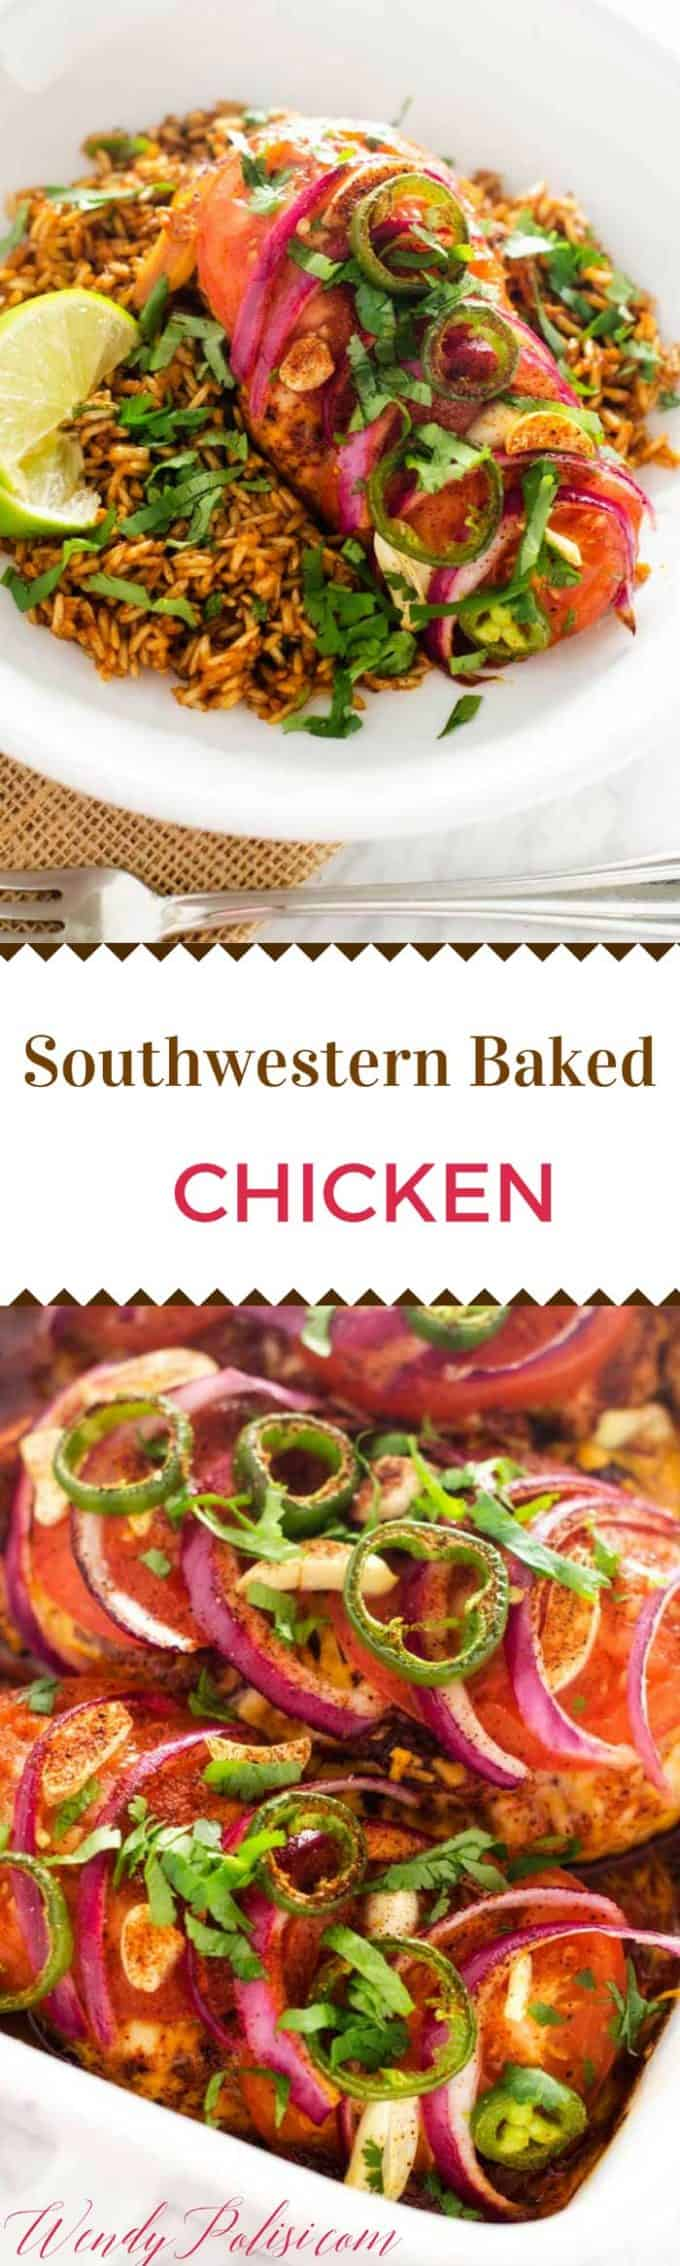 This Southwestern Baked Chicken is a delicious and healthy dinner recipe.  It is easy to make-ahead so that dinner is ready to pop in the oven at the end of a busy day.